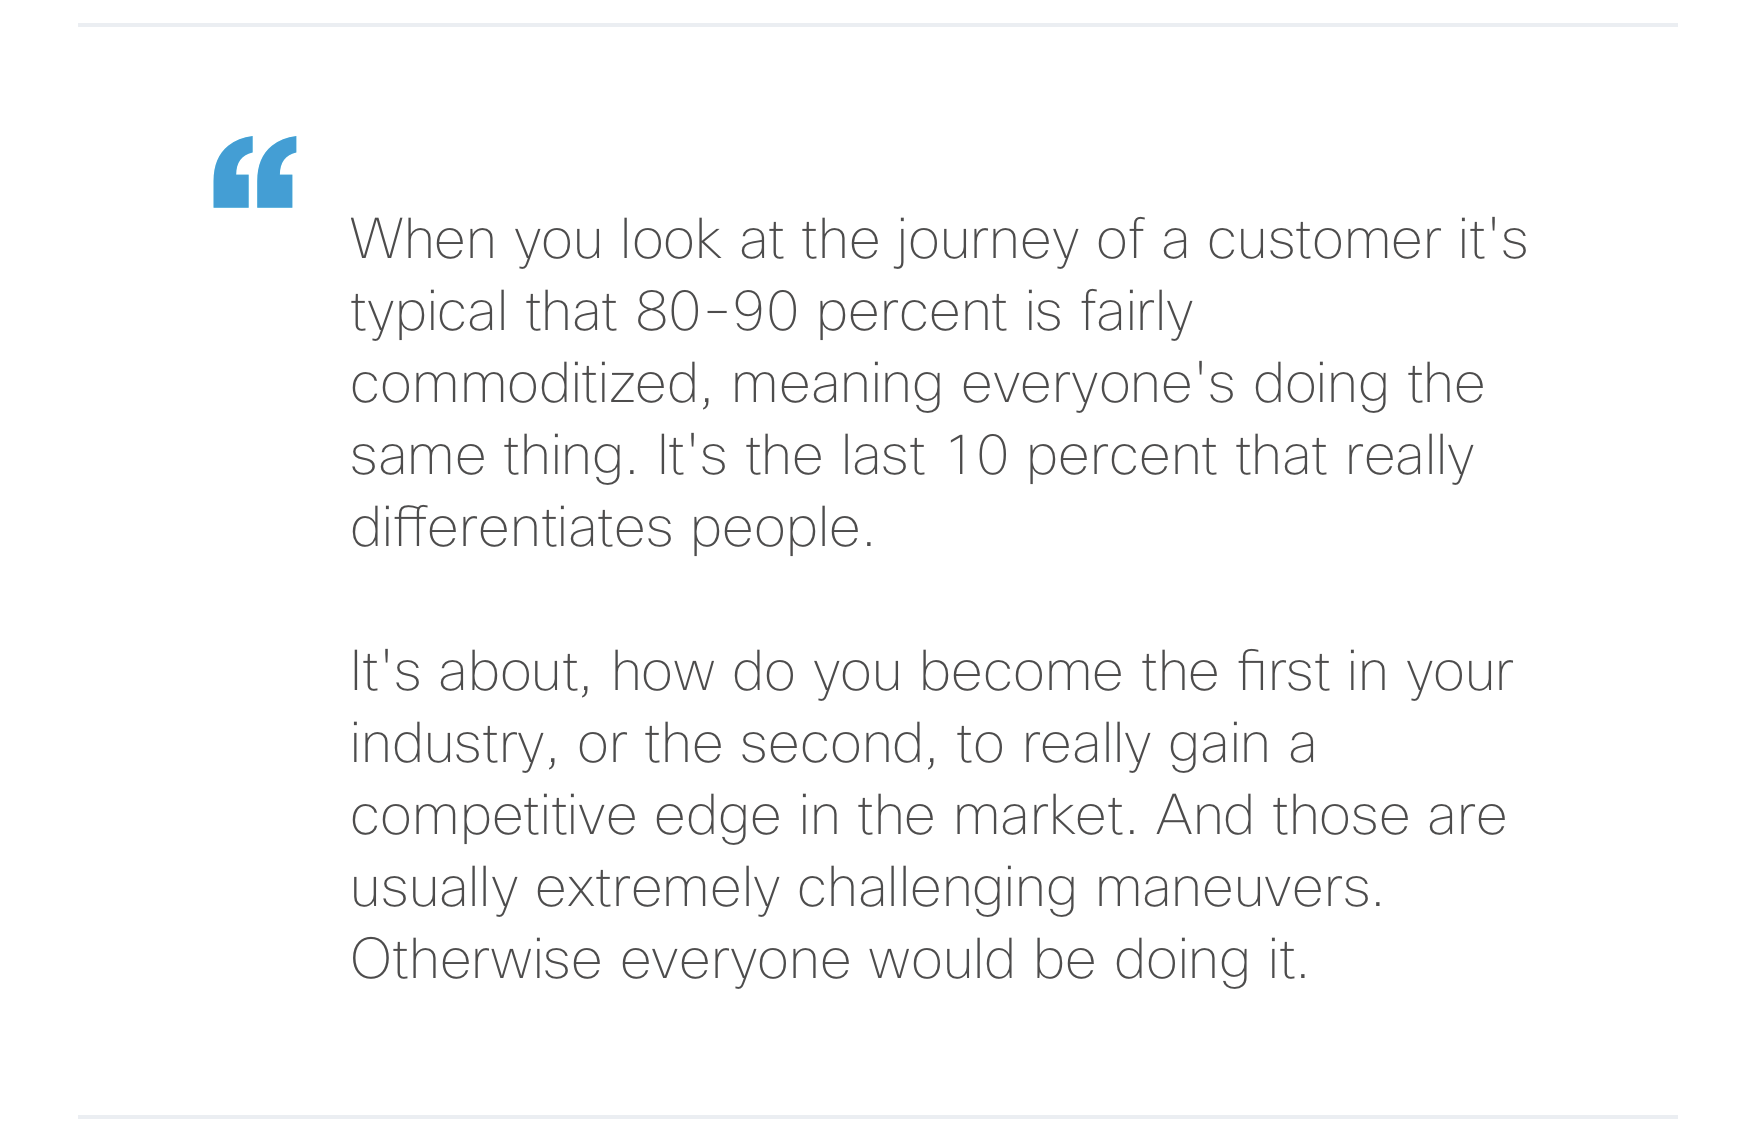 """""""When you look at the journey of a customer it's typical that 80-90 percent is fairly commoditized, meaning everyone's doing the same thing. It's the last 10 percent that really differentiates people. It's about, how do you become the first in your industry, or the second, to really gain a competitive edge in the market. And those are usually extremely challenging maneuvers. Otherwise everyone would be doing it."""""""